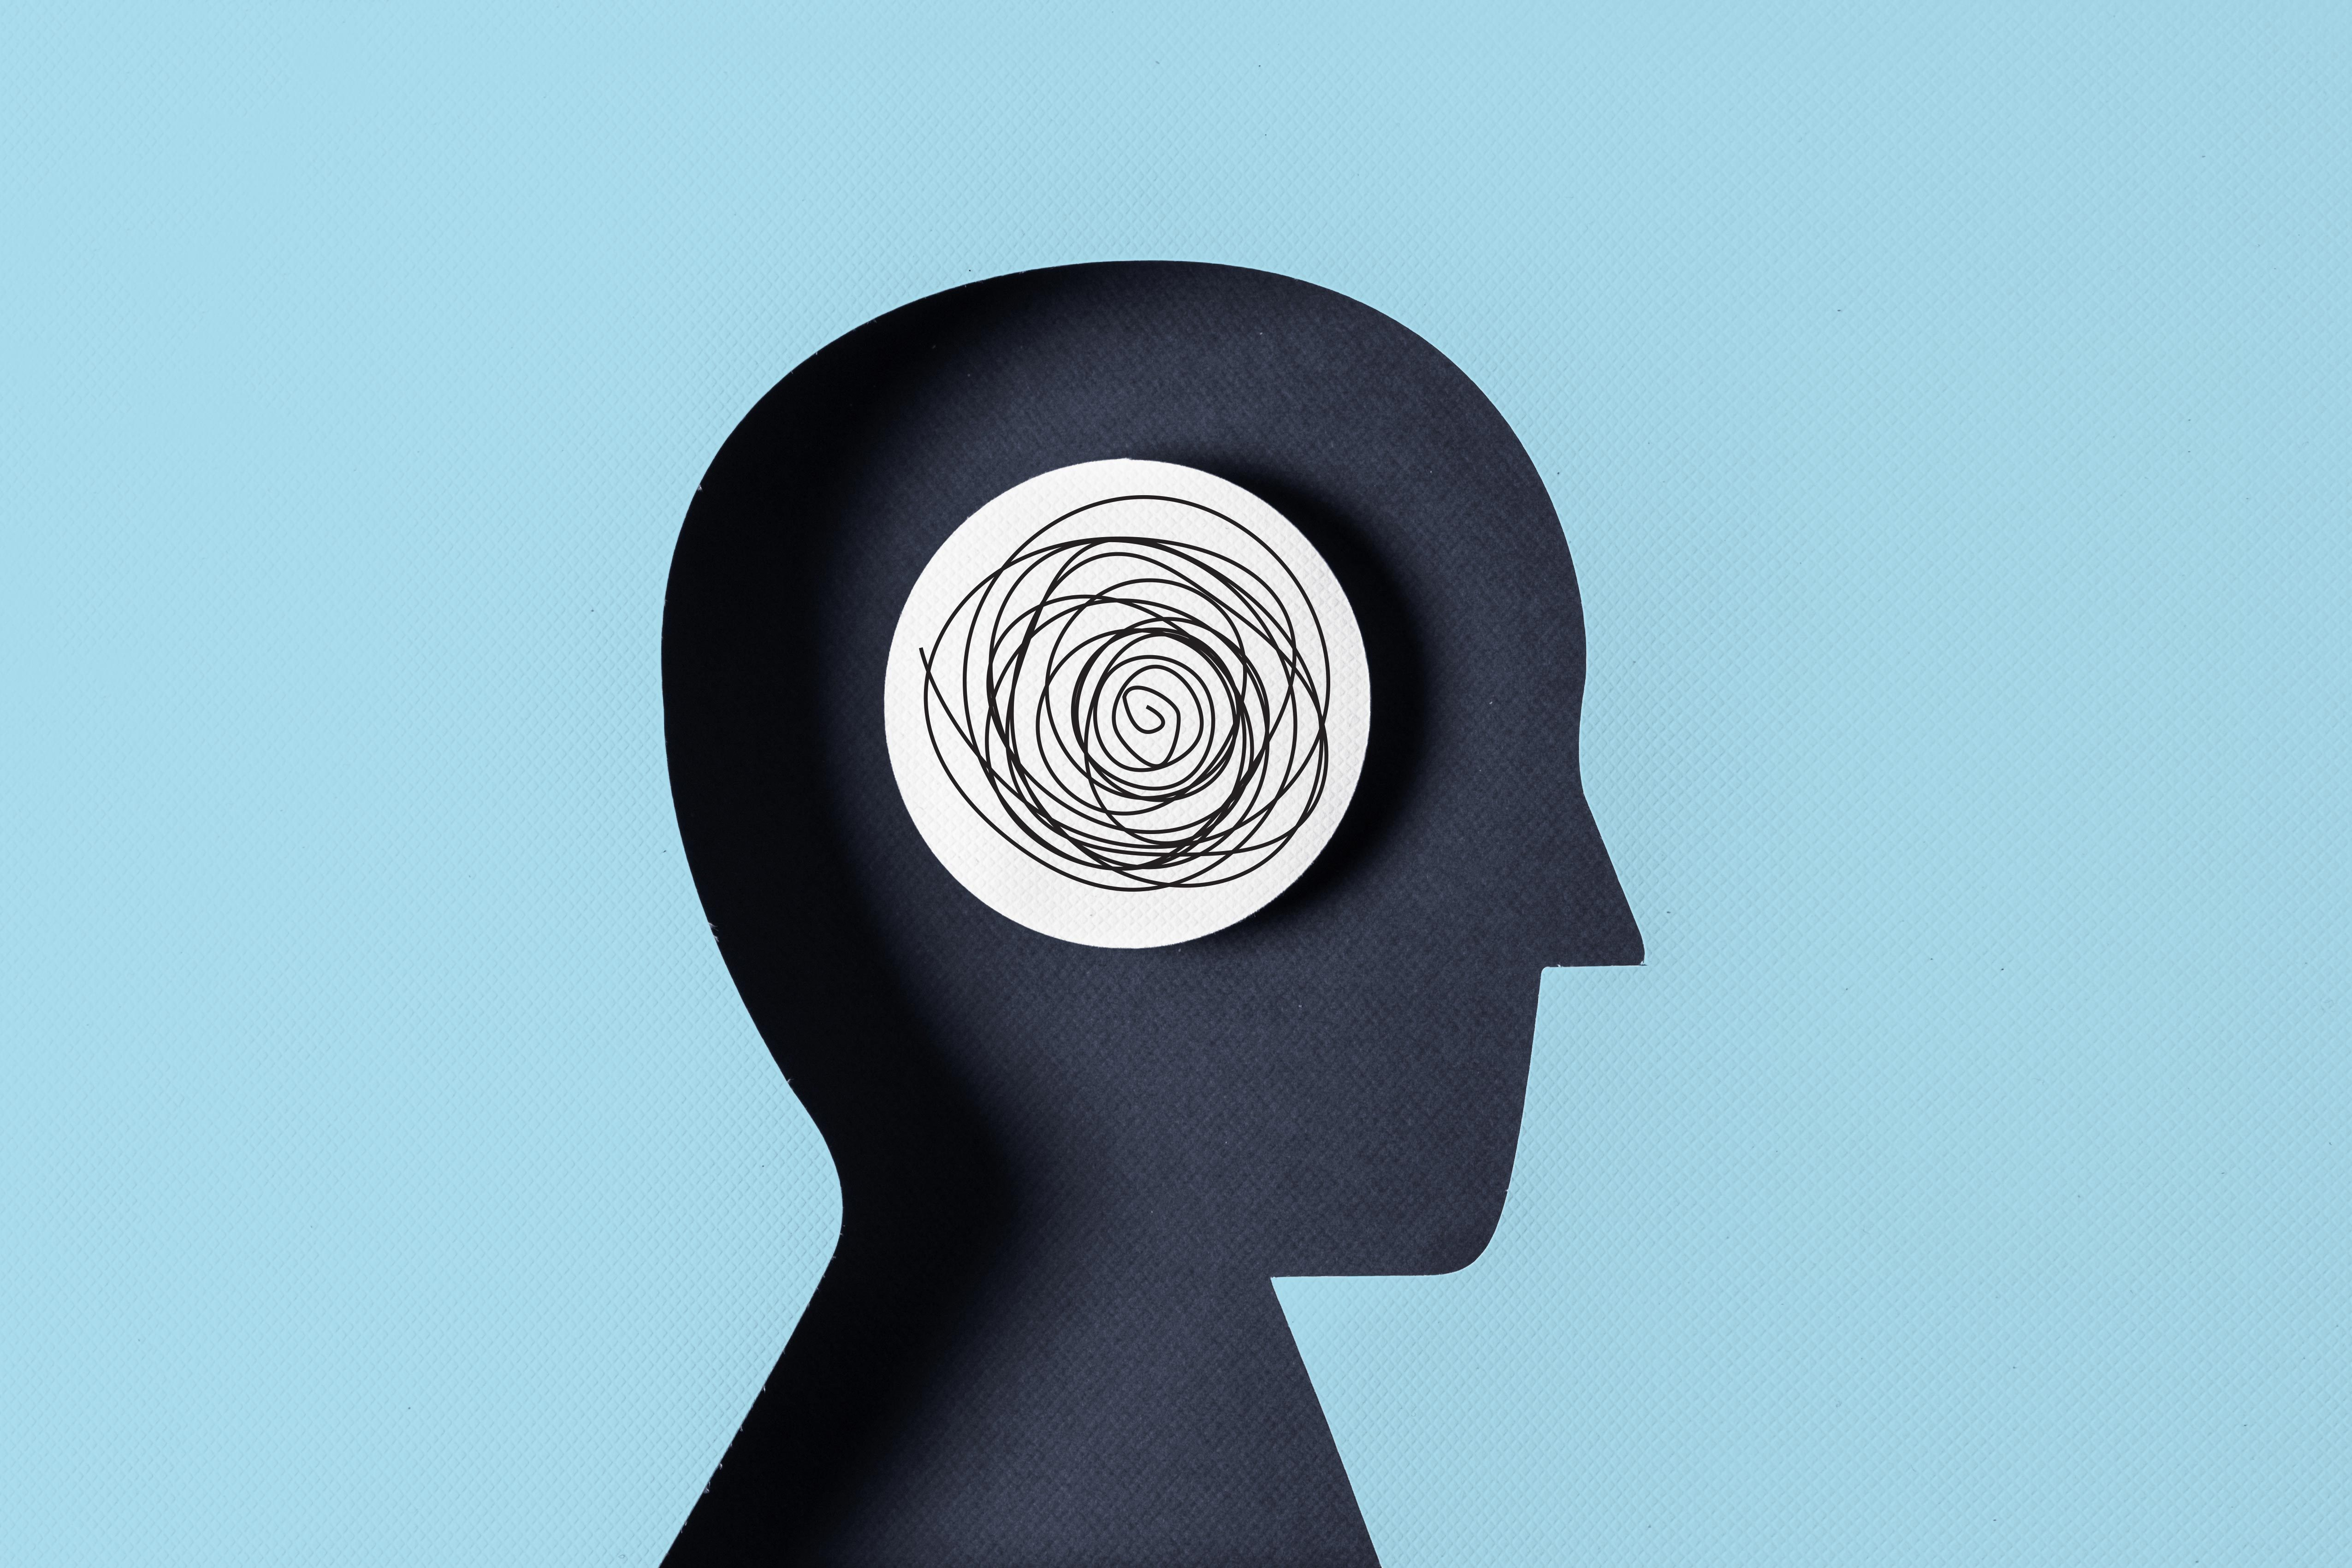 paper silhouette of a head. scibbled circles in the brain.